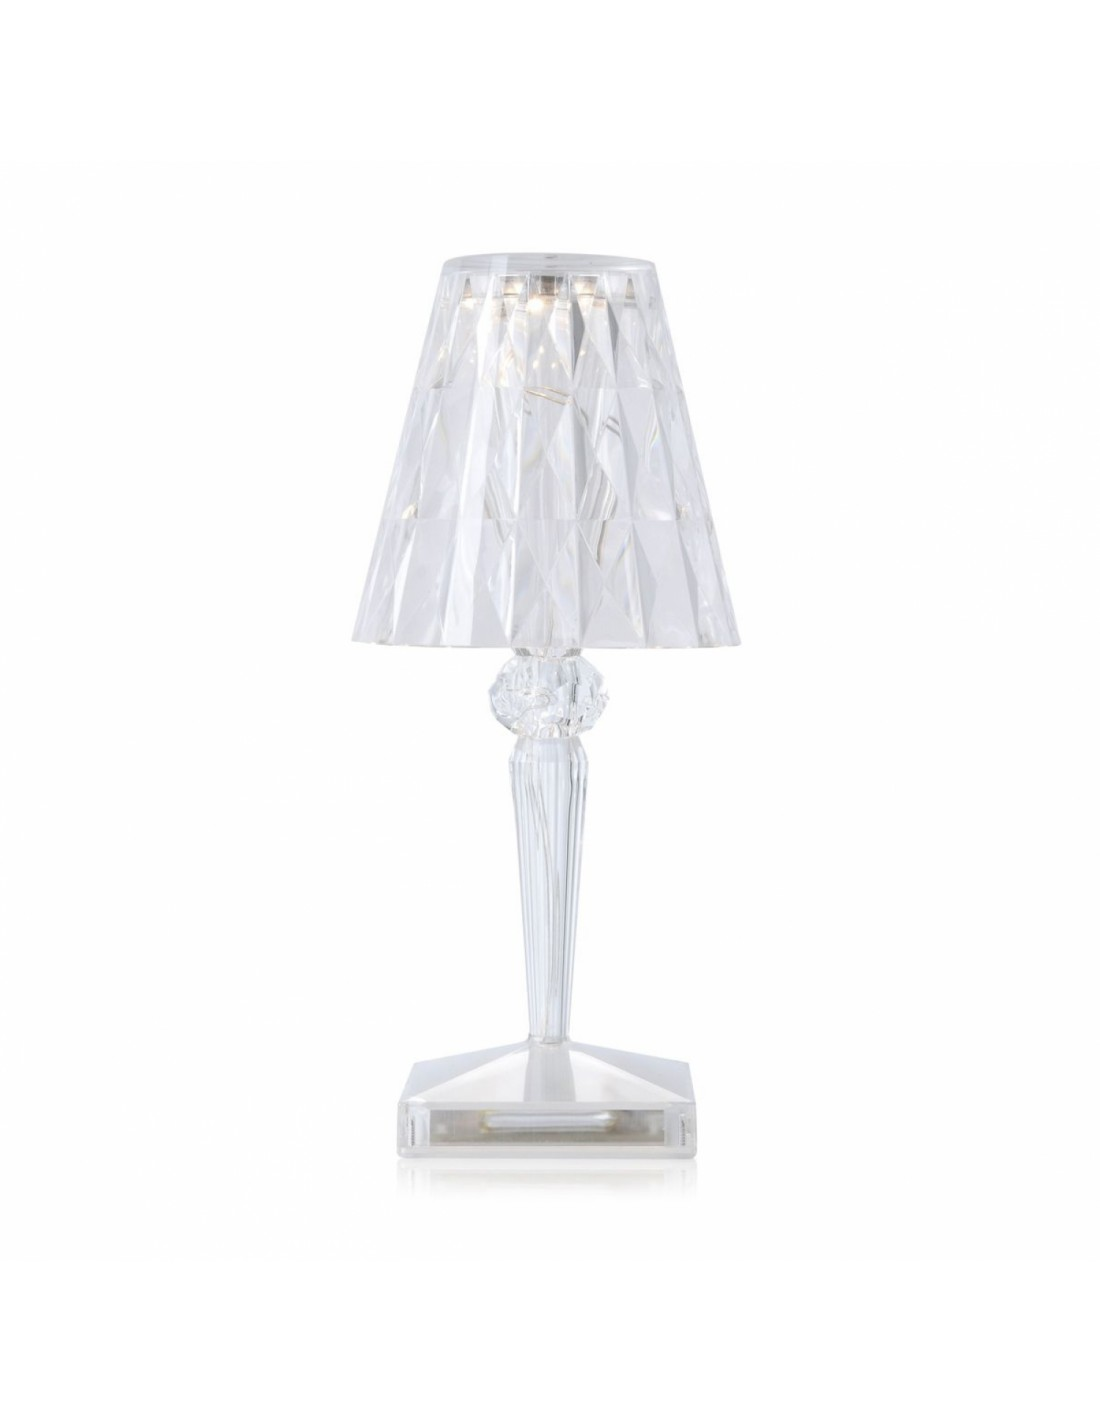 lampe de table sans fil battery seul cristal pour la marque kartell. Black Bedroom Furniture Sets. Home Design Ideas